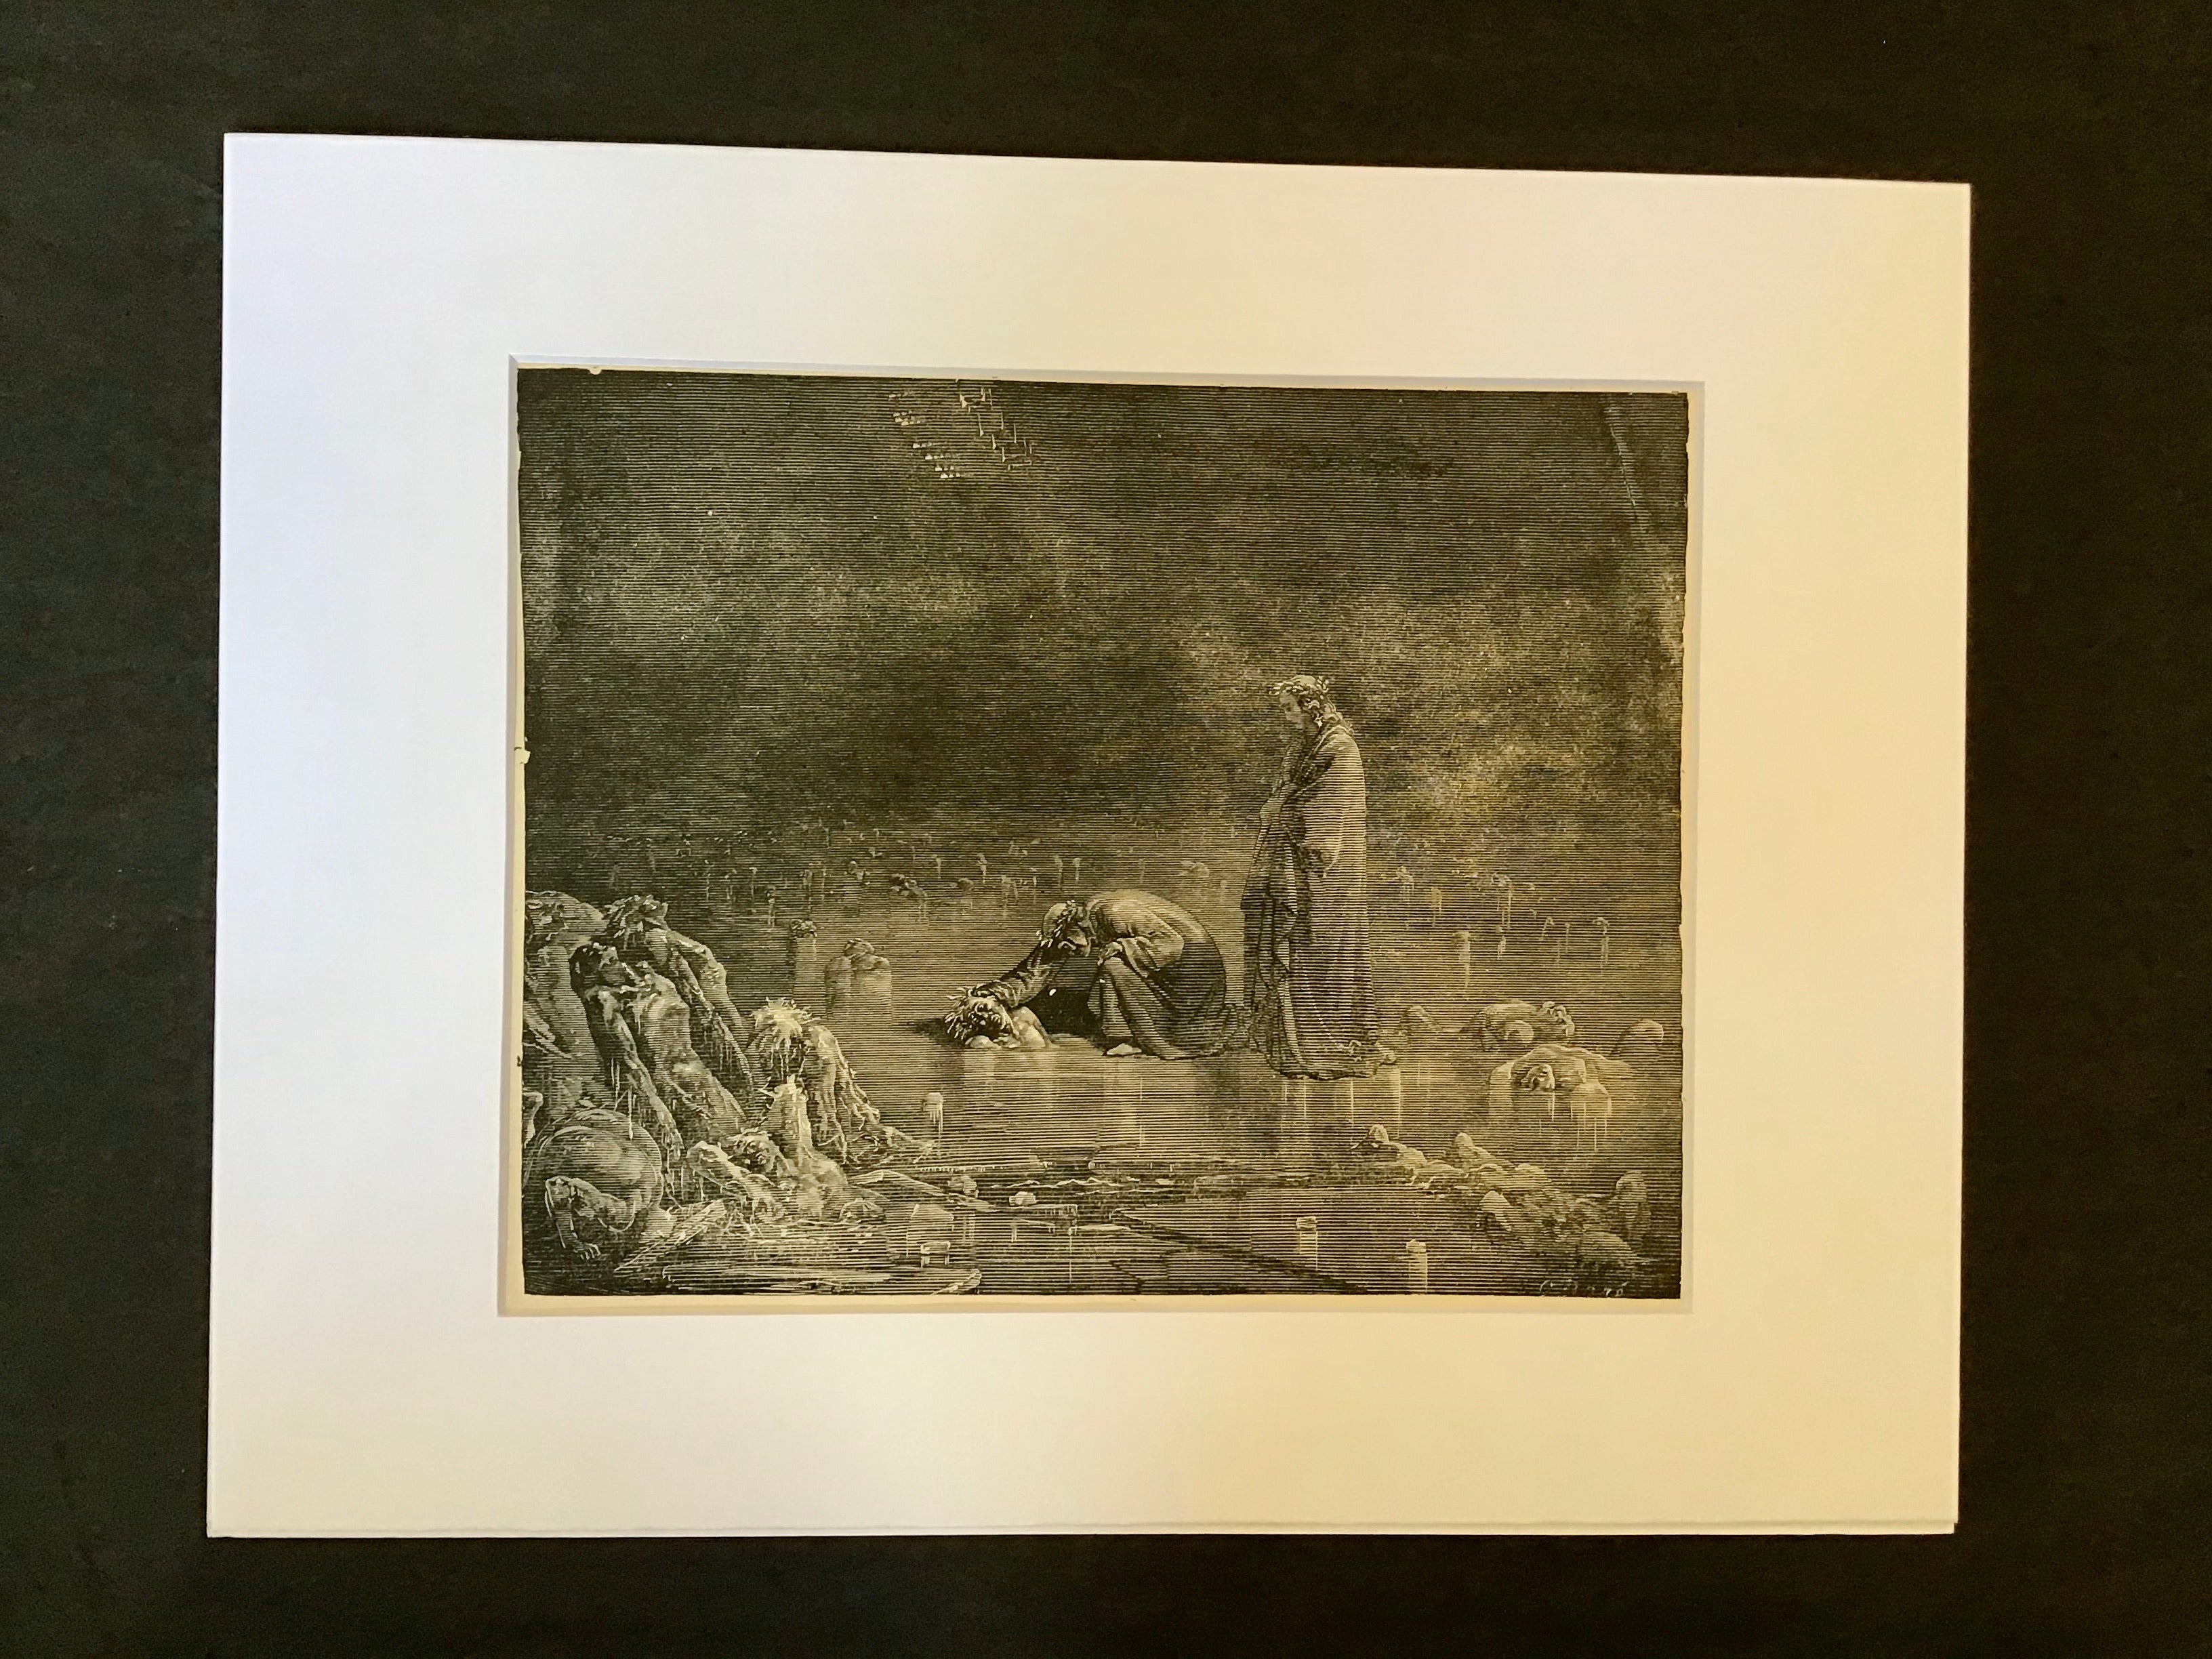 Gustave Doré Matted Print-Canto XXXII Lines 97, 98